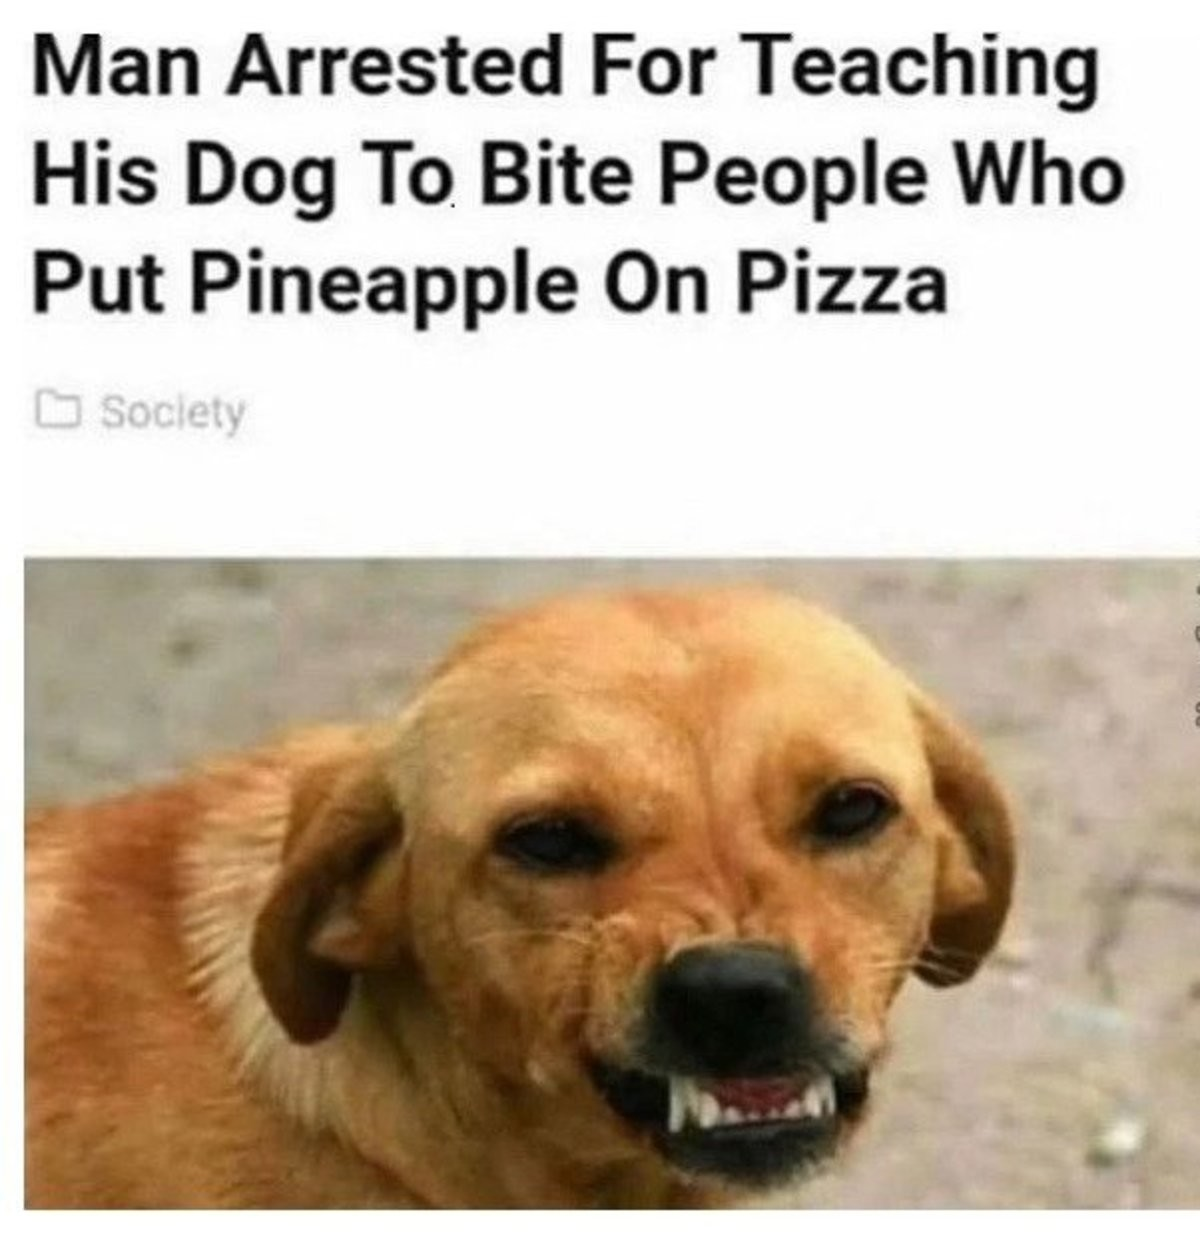 How To Train Your Dog. join list: CuteDogs (233 subs)Mention History. Put Cirri' l, Pizza. Christ, dude, if you don't like it, you don't have to eat any. What authority do you have to say what should or shouldn't be on someone else's pizza?